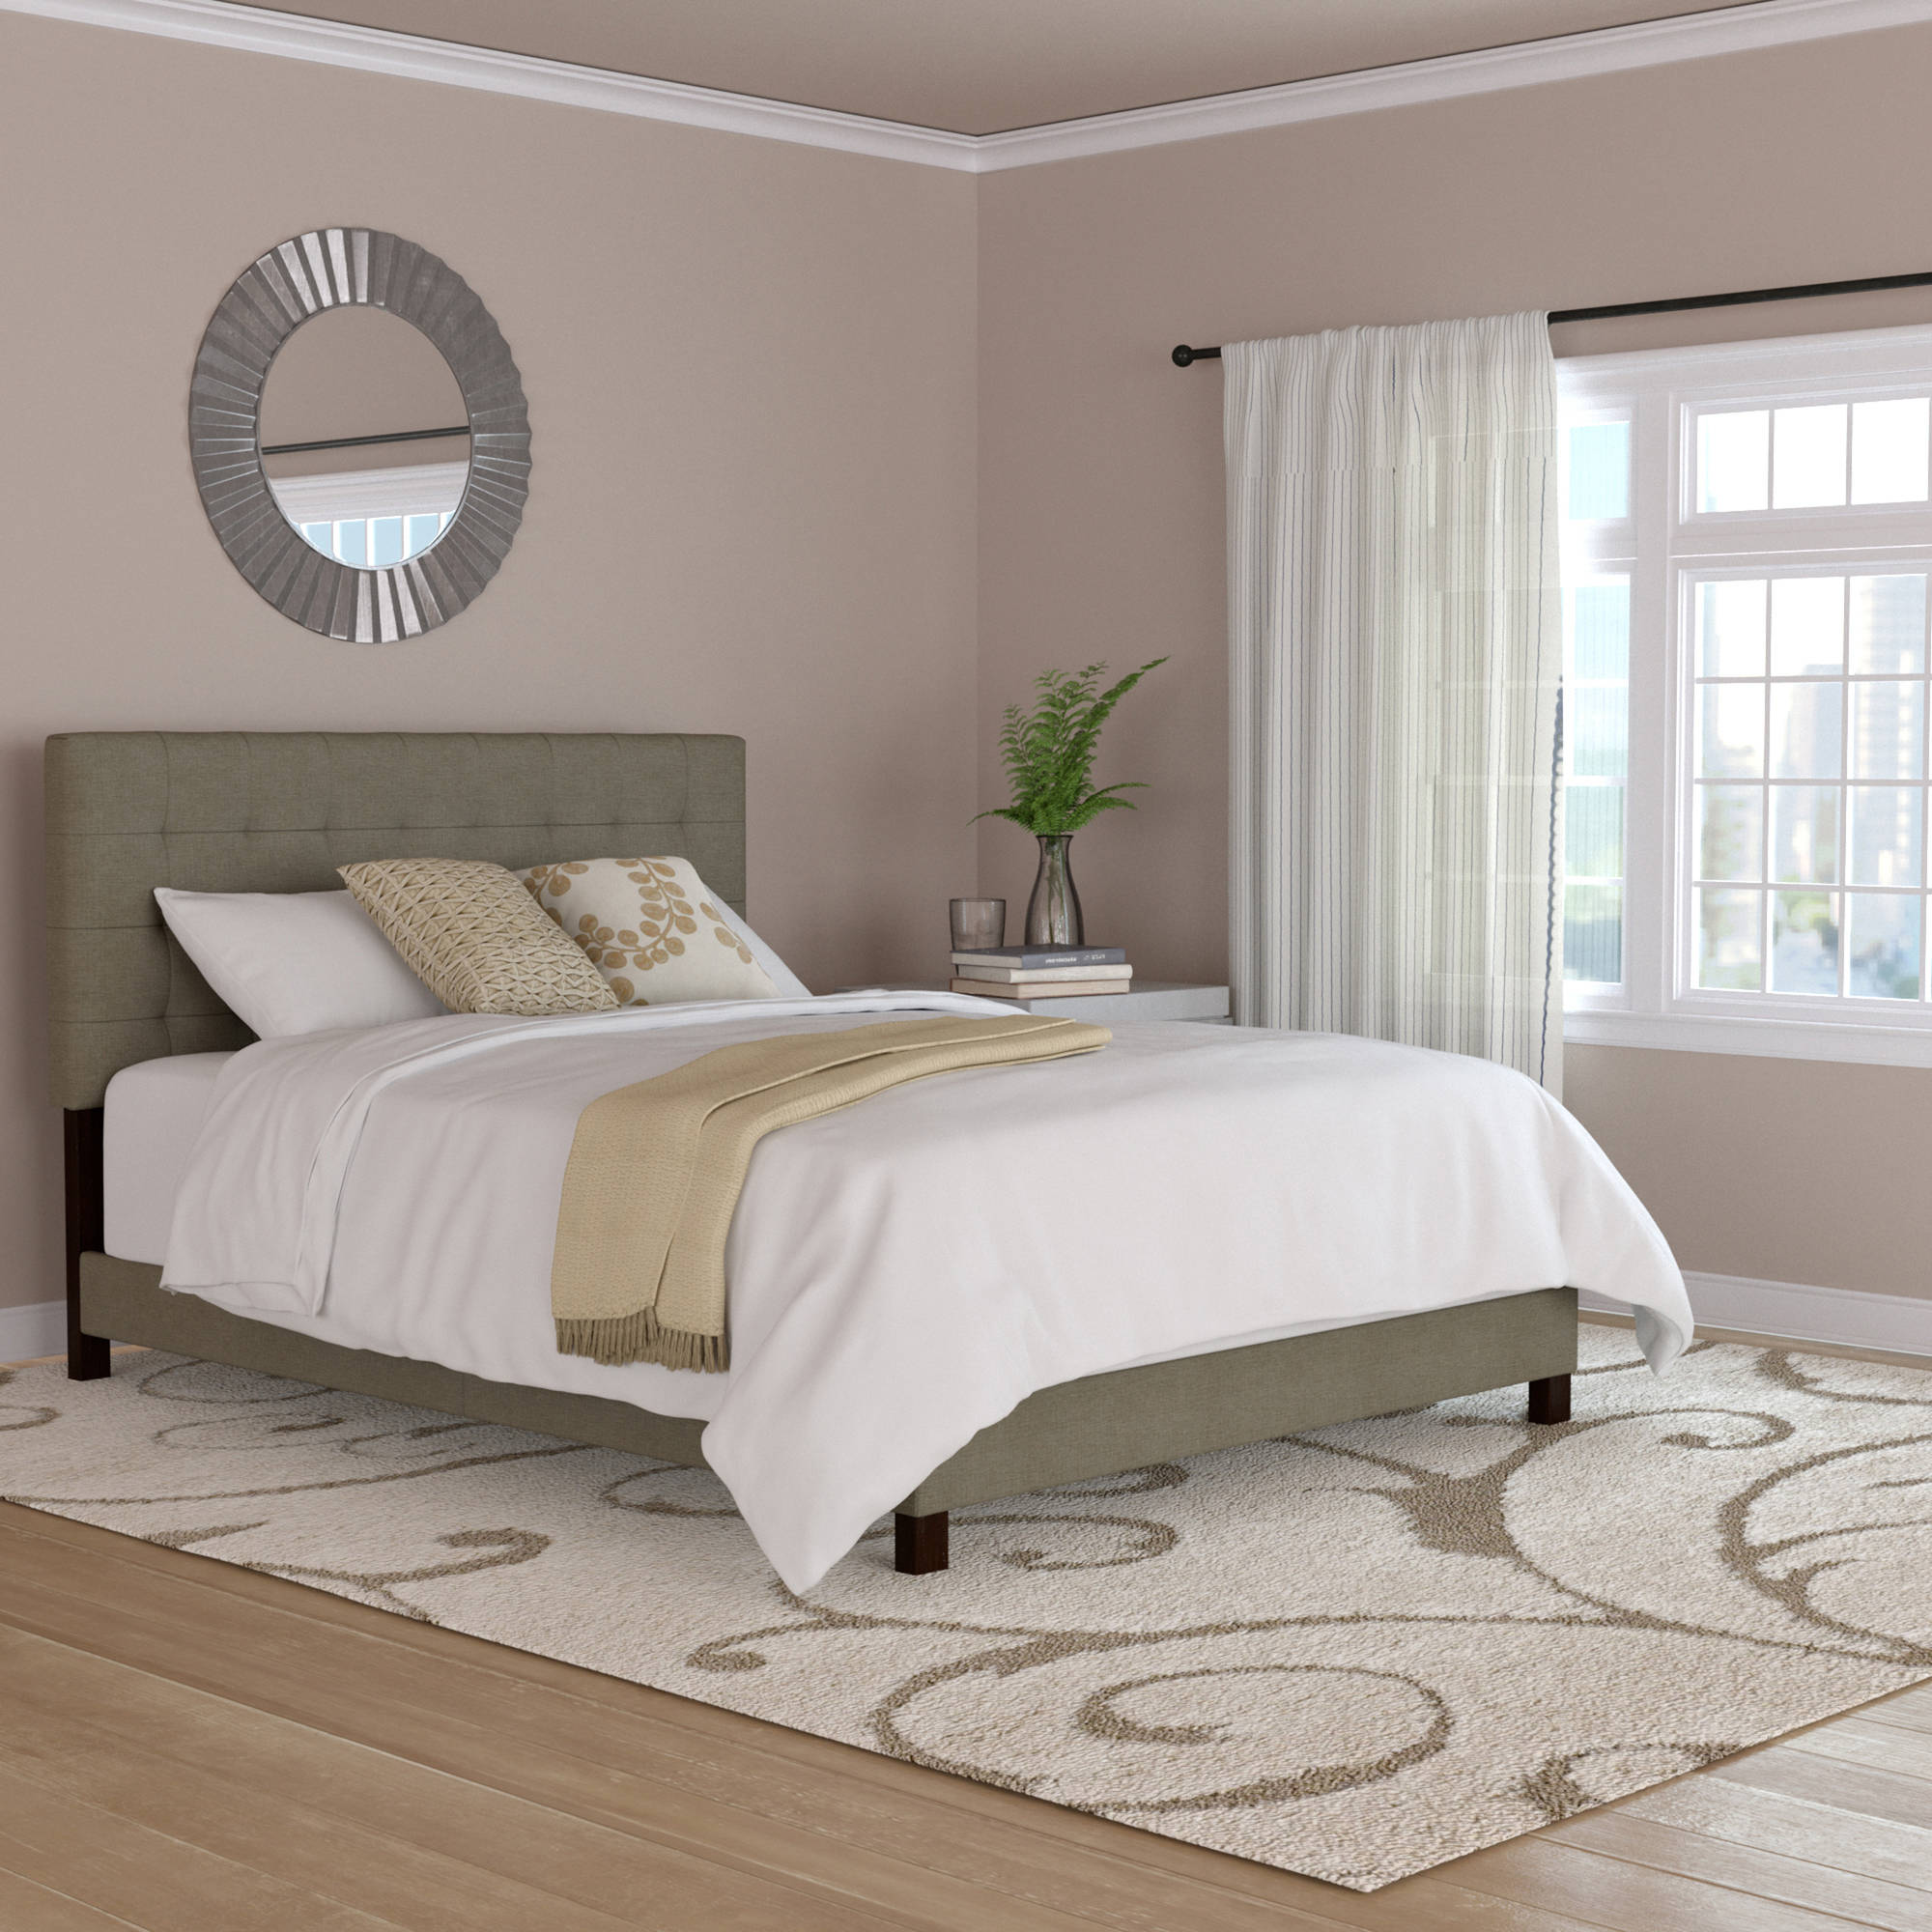 Mainstays Fabric Tufted Queen Size Bed, Grey